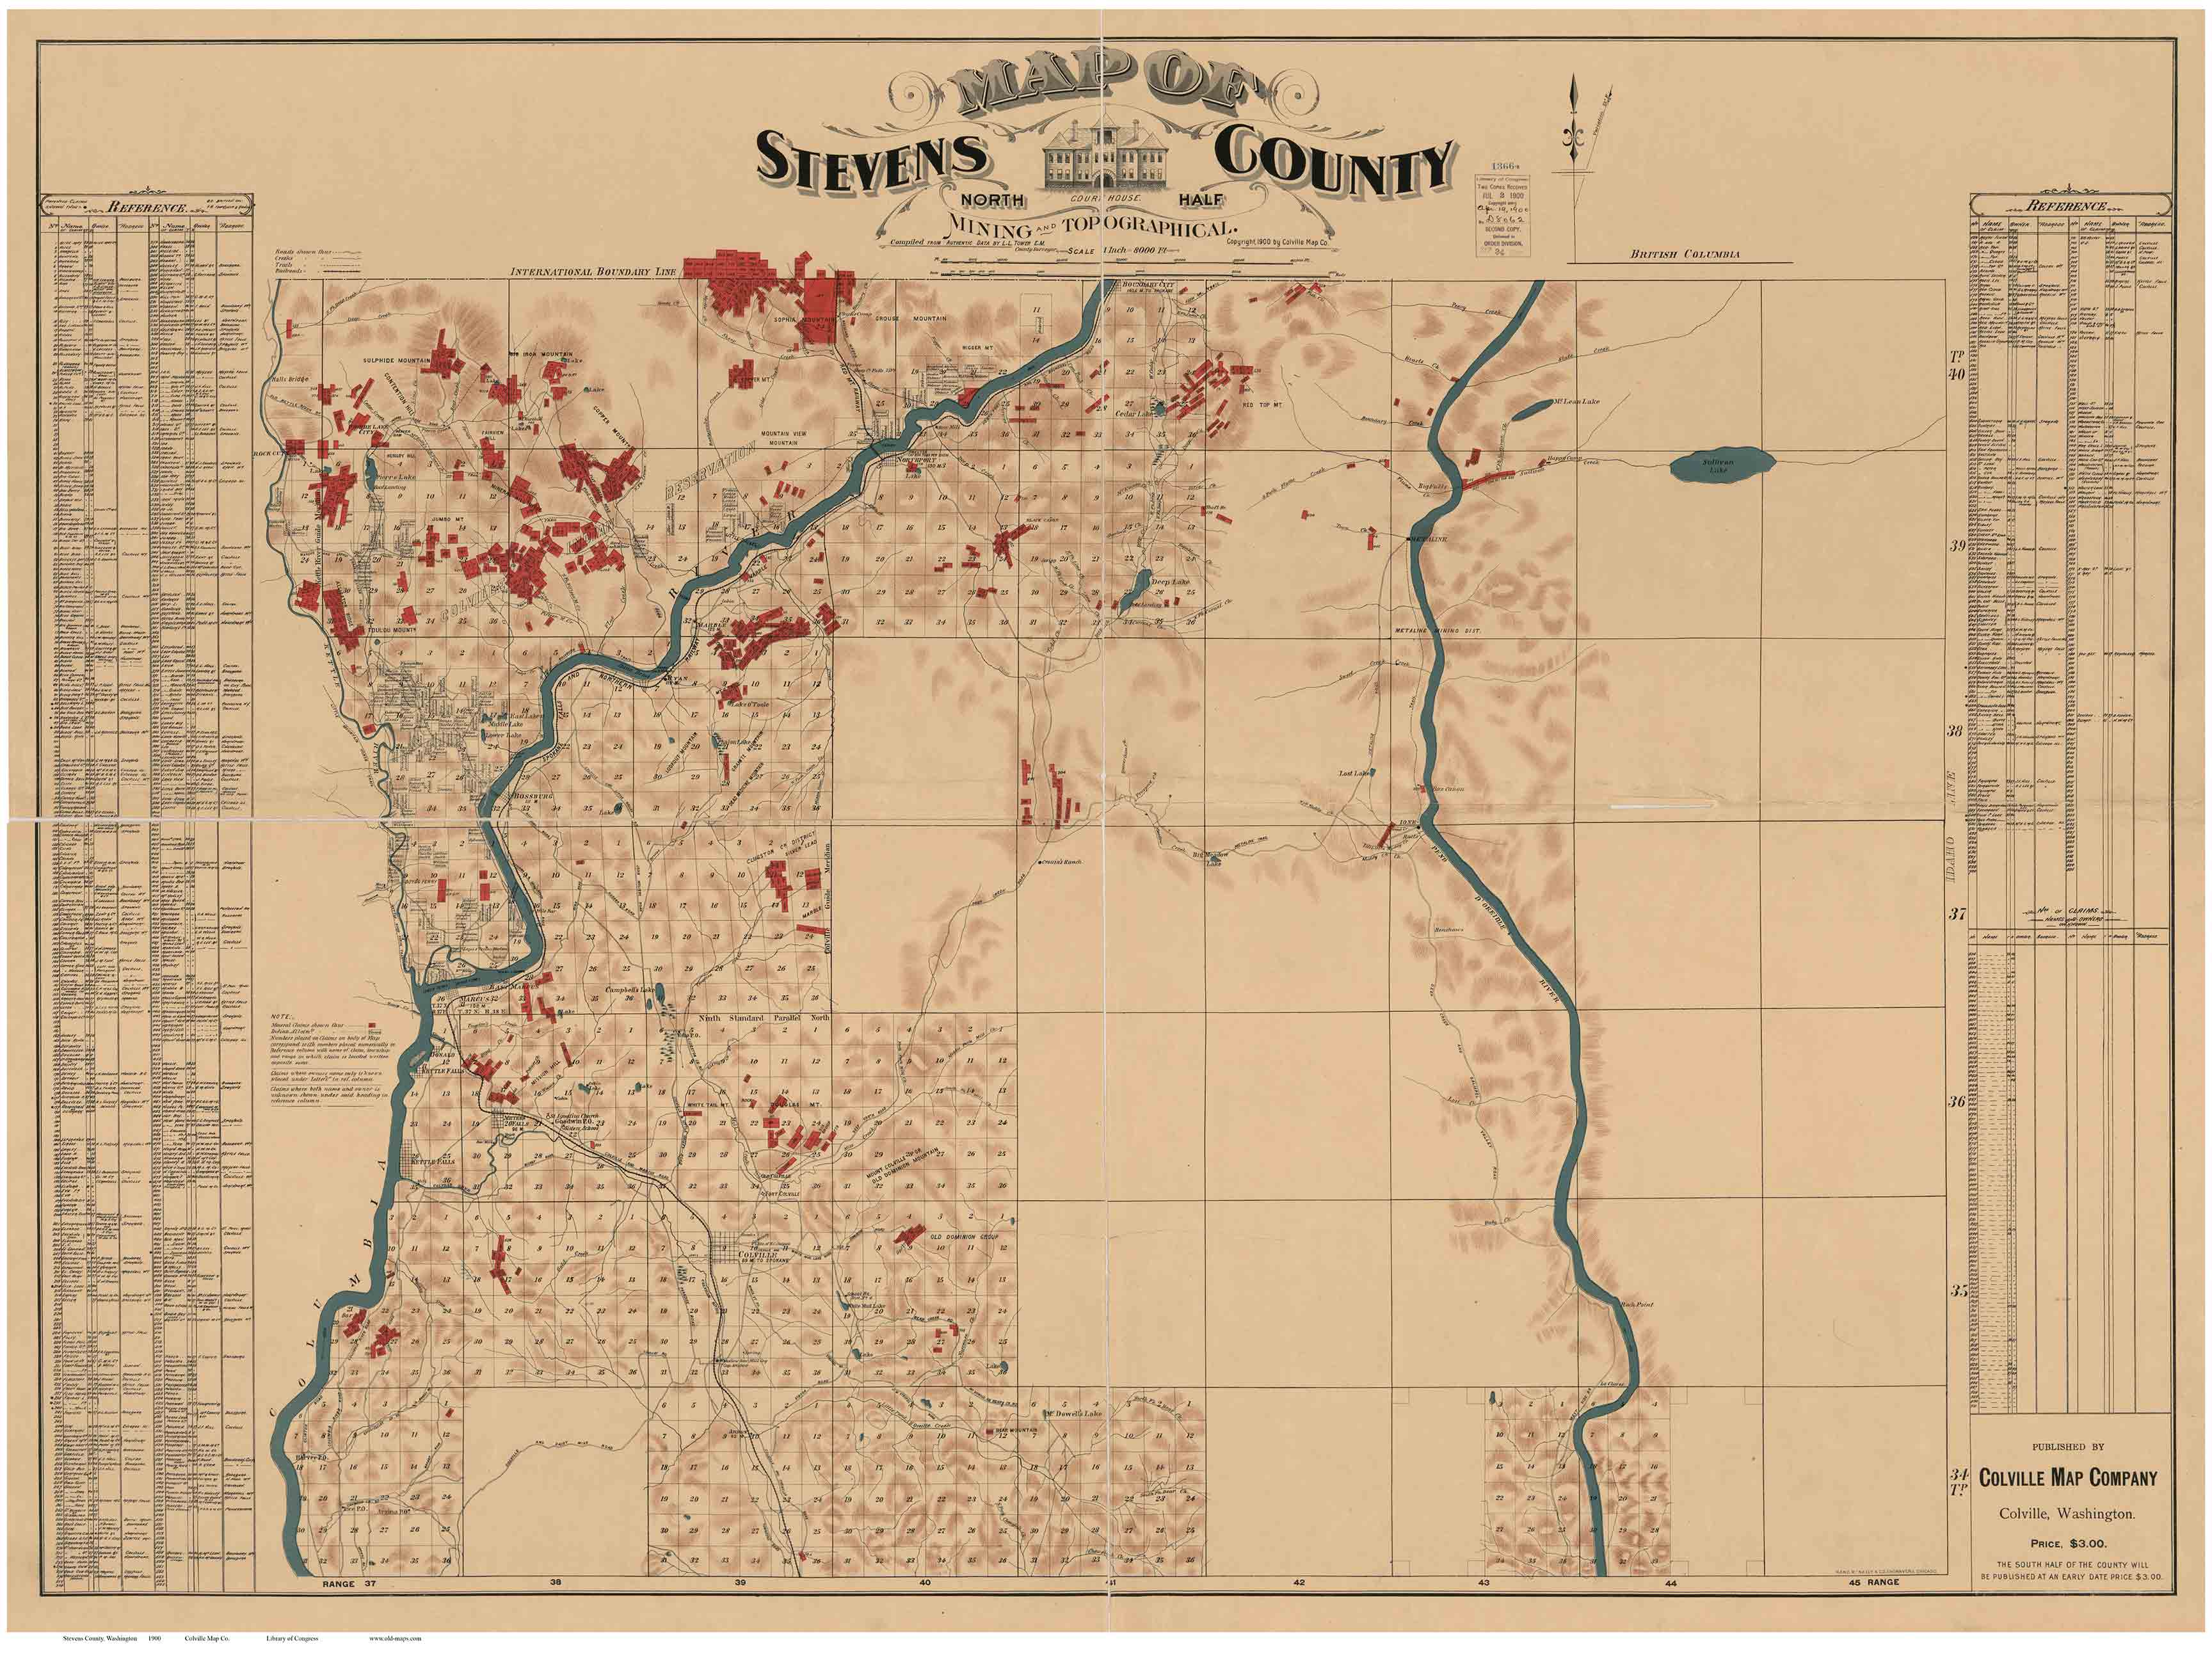 Stevens County Washington Old Map Reprint OLD MAPS - The old map company